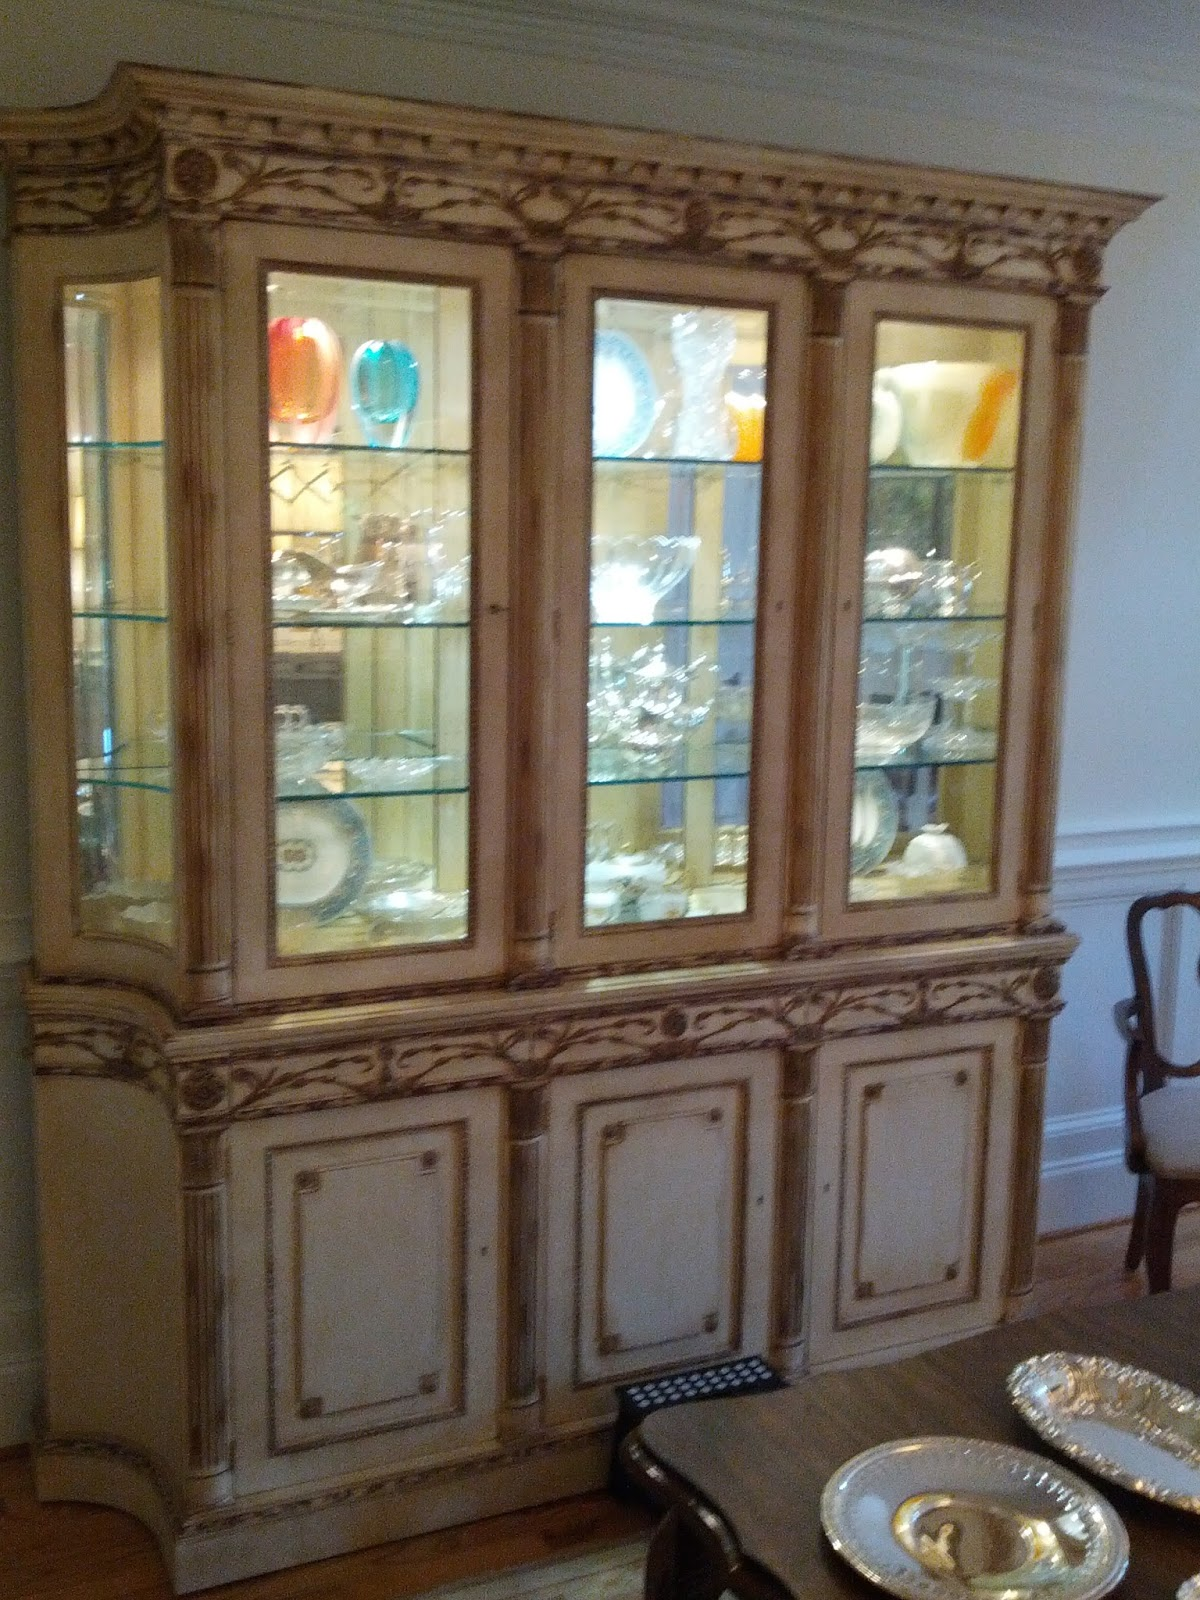 Mark Sunderland on Design: How To Decorate A China Cabinet